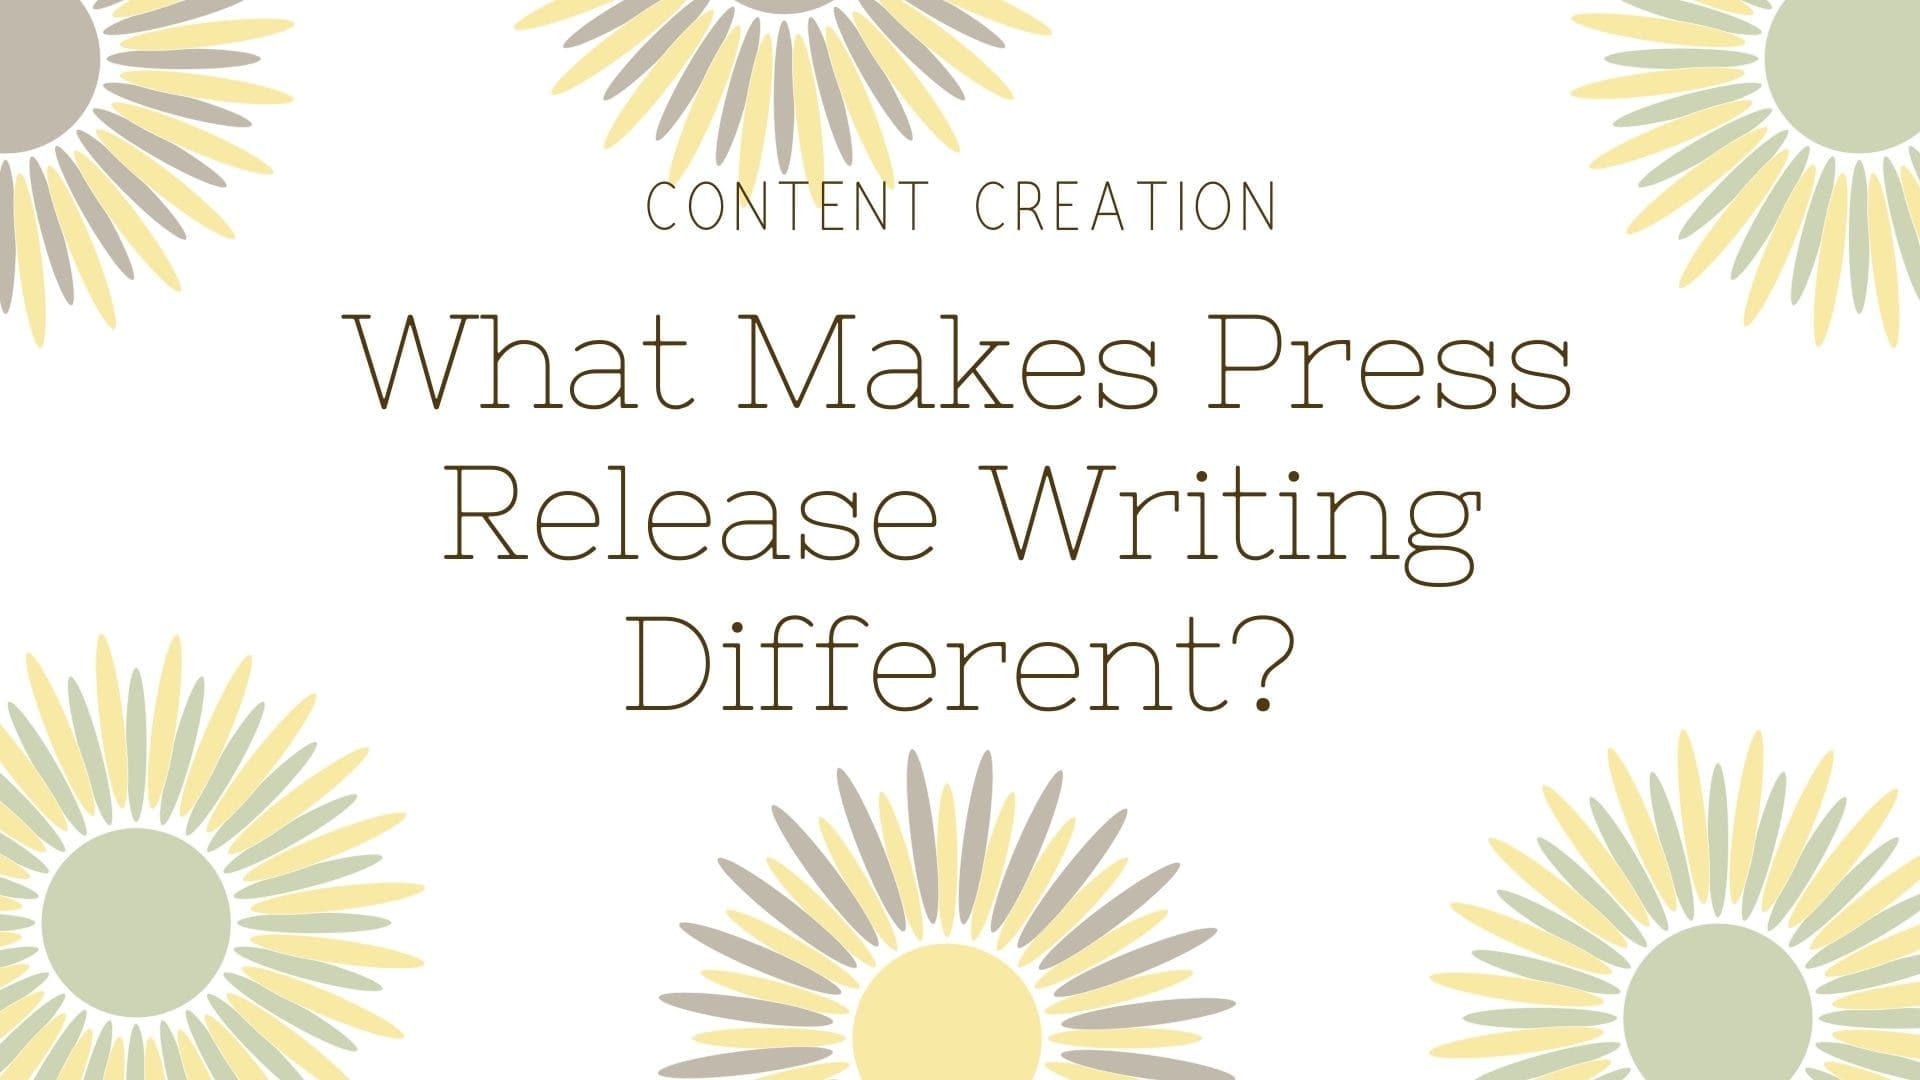 What Makes Press Release Writing Different